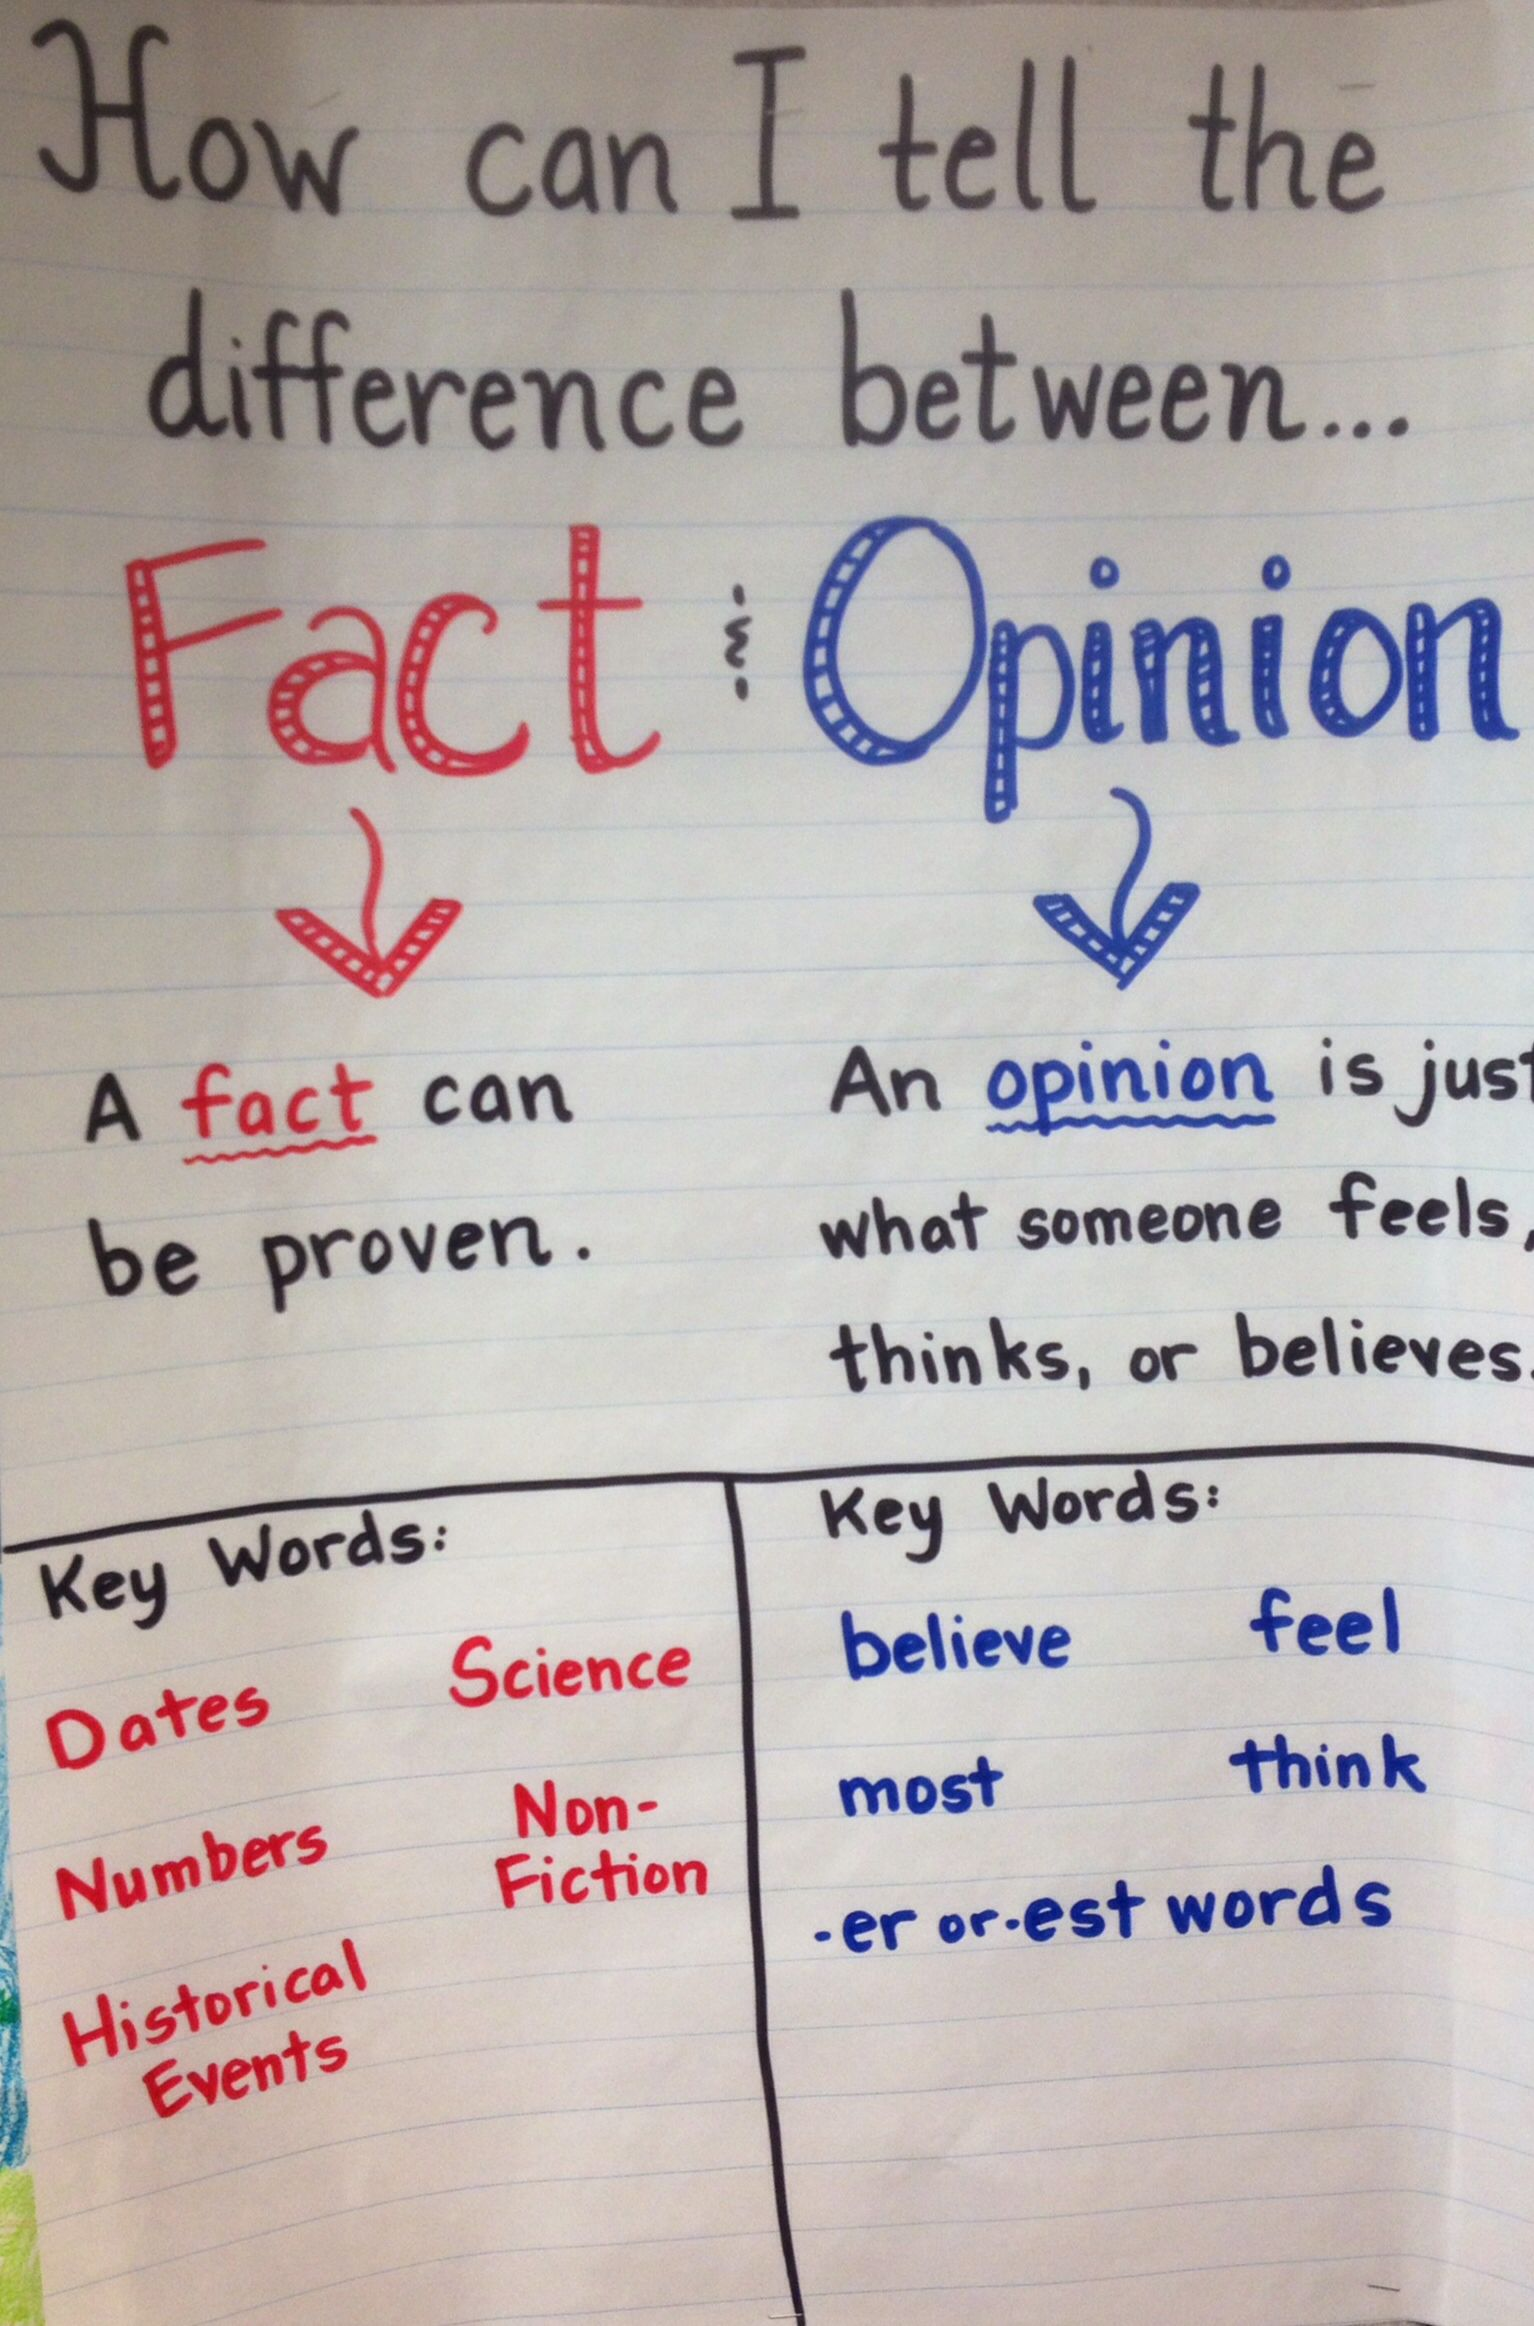 hight resolution of 34 Fact and Opinion Reading Comprehension Passages ideas   fact and opinion